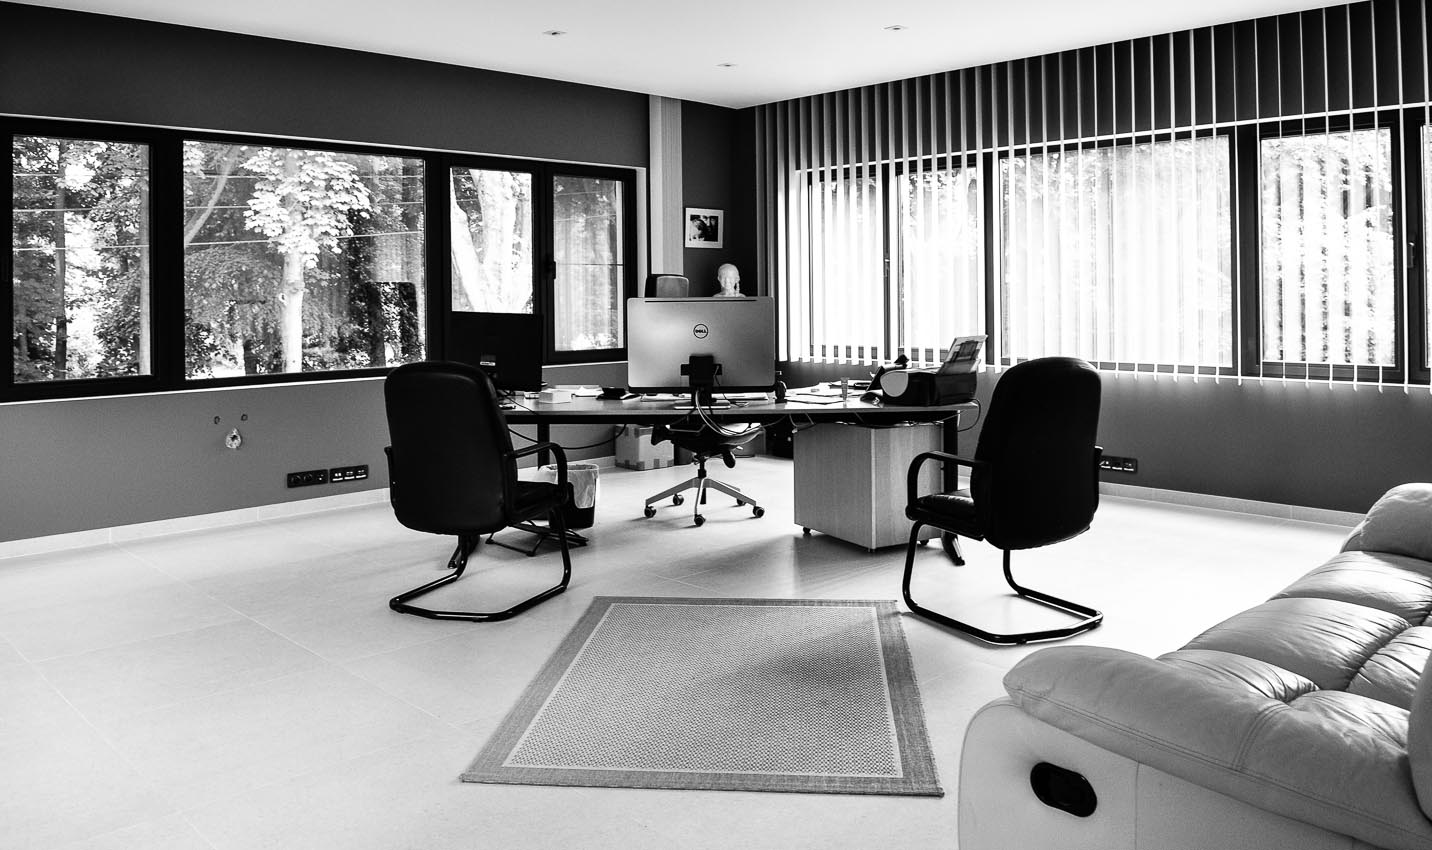 06-bureau-office-location-vente-decors-film-cinema-photo-belgium-bruxelles